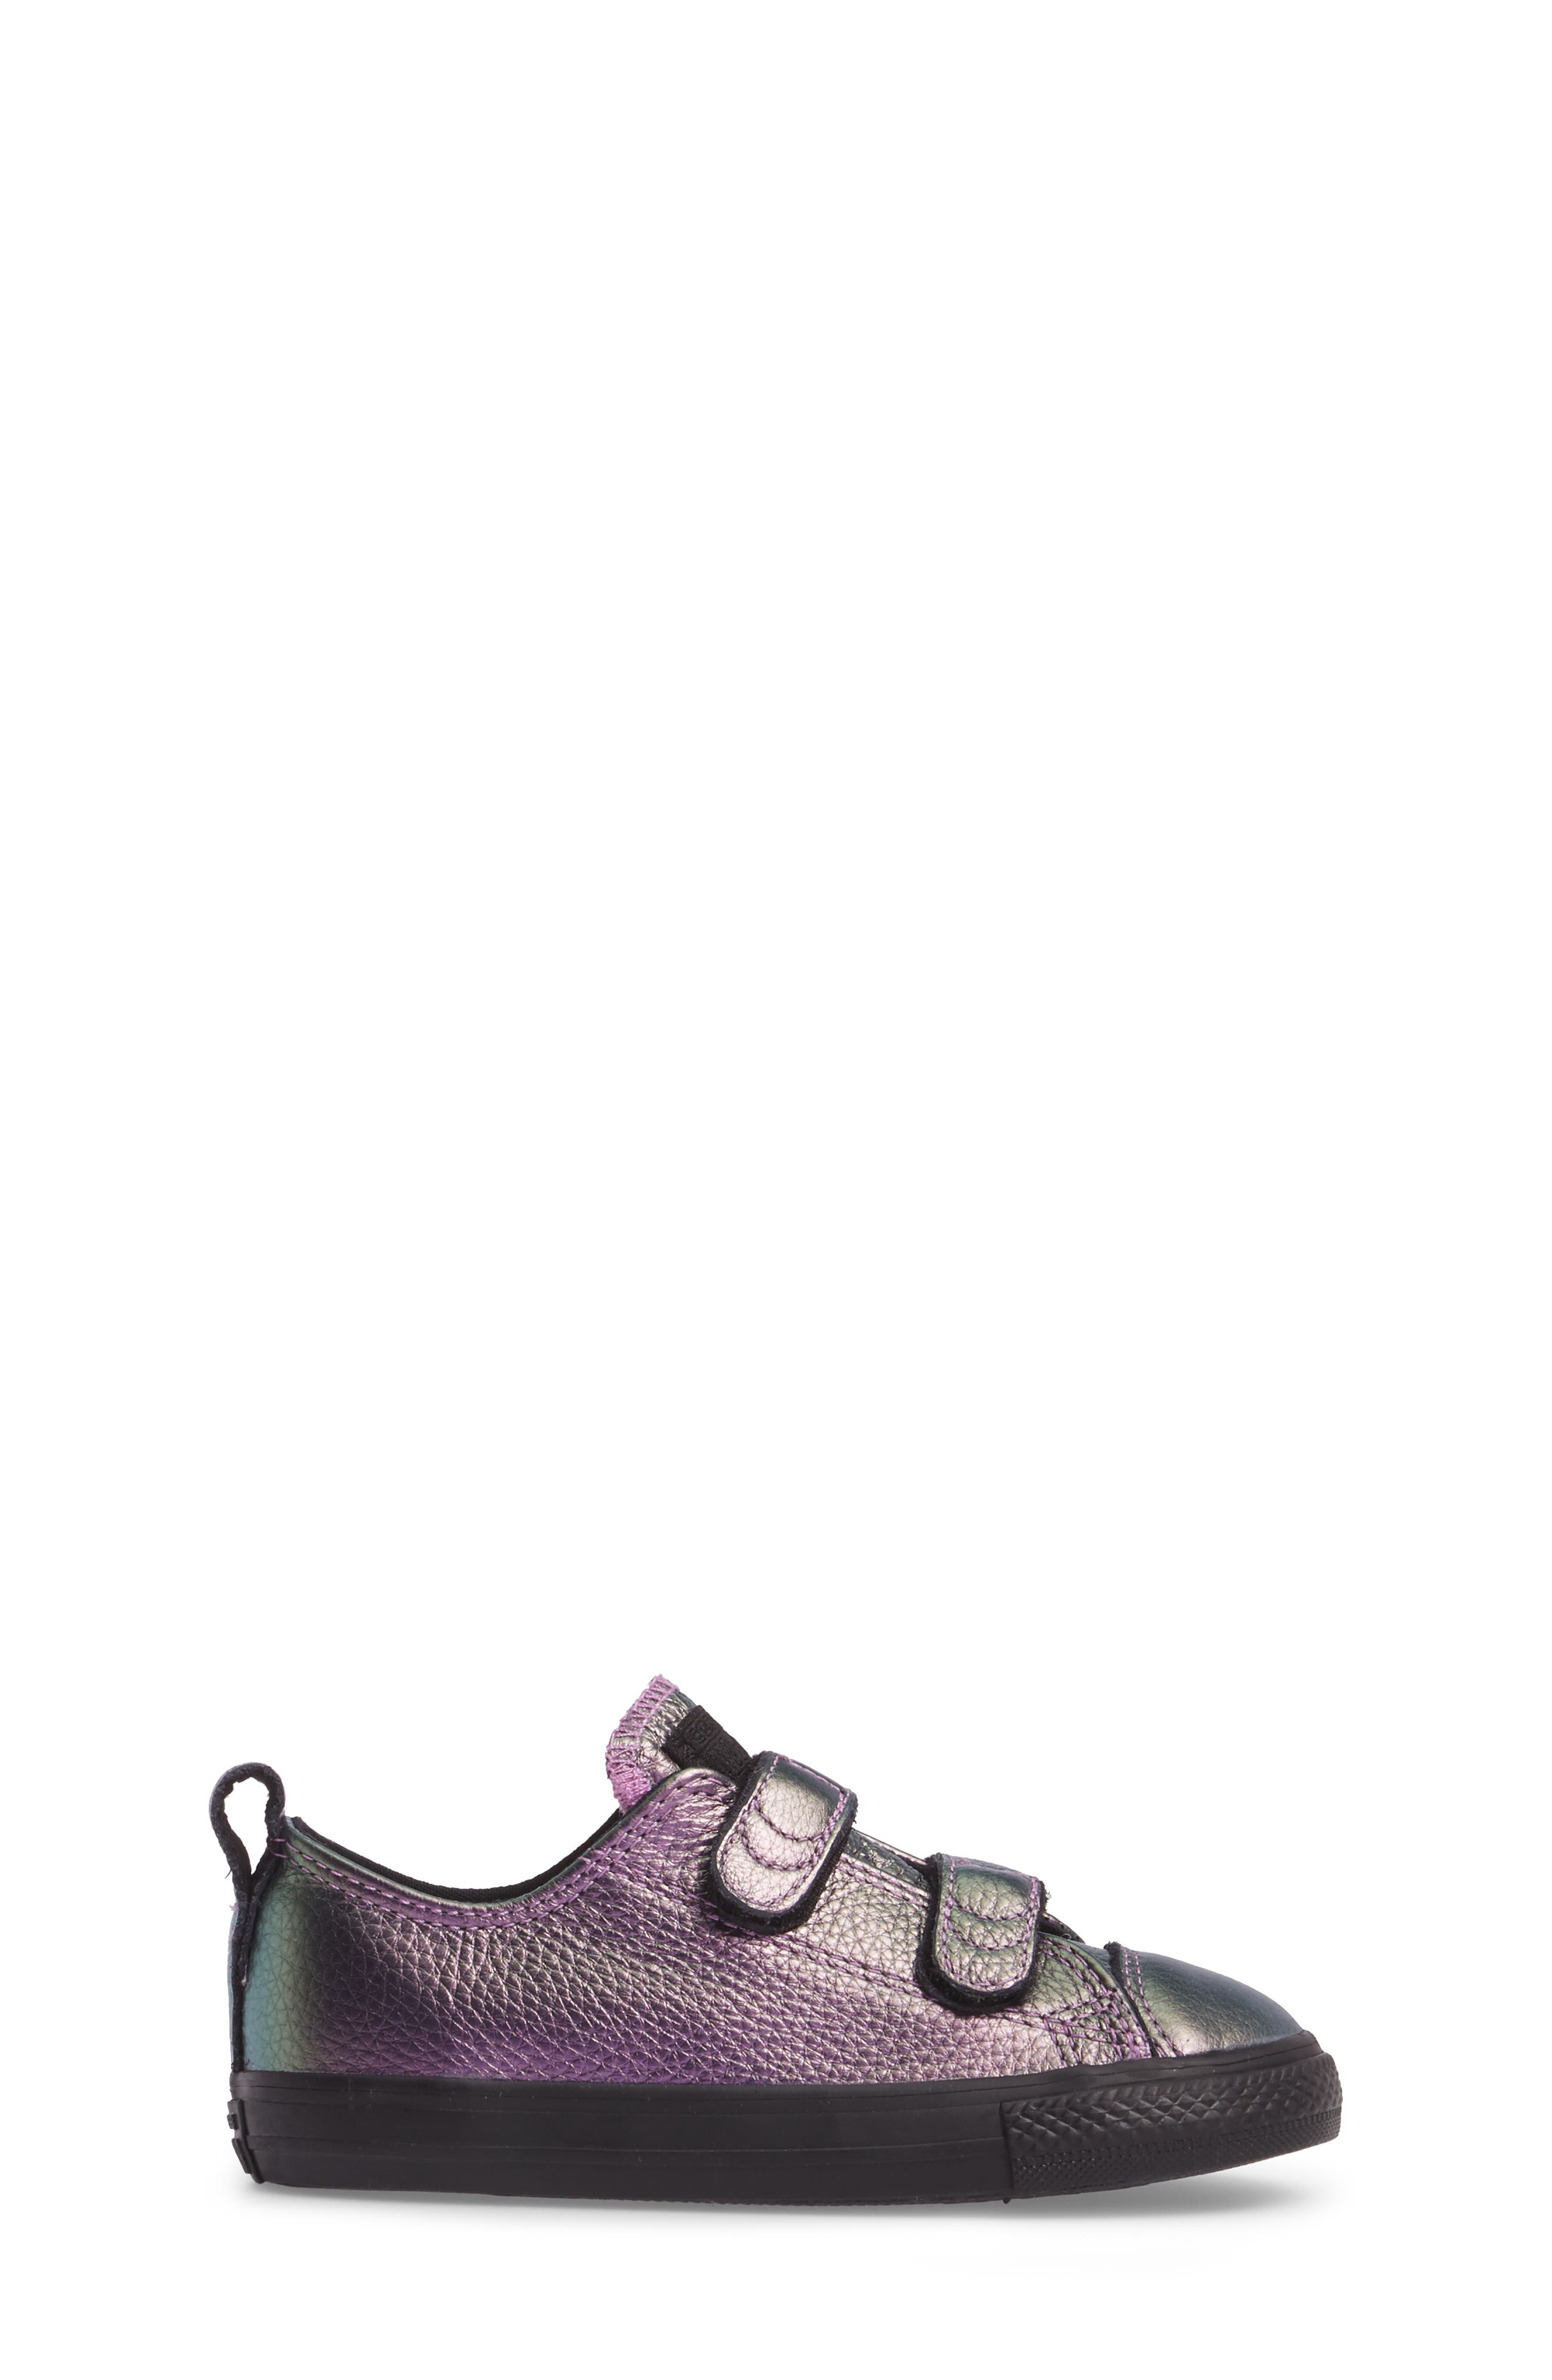 Chuck Taylor<sup>®</sup> All Star<sup>®</sup> Iridescent Leather Low Top Sneaker,                             Alternate thumbnail 3, color,                             Violet Leather